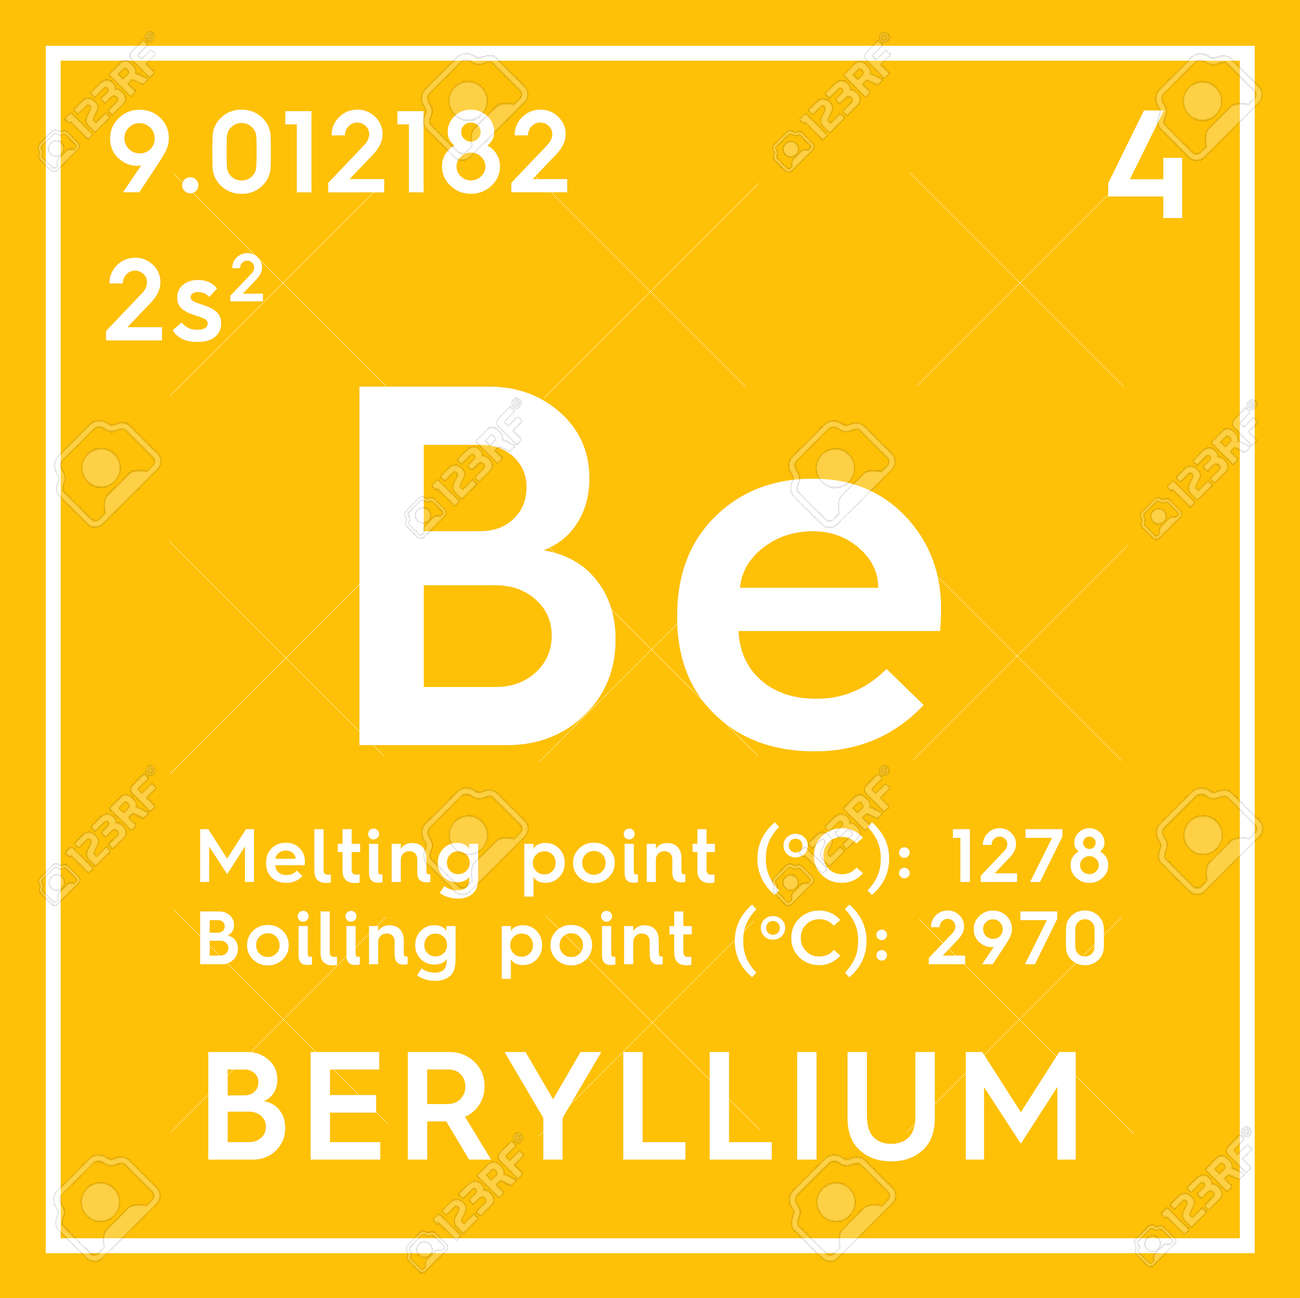 Beryllium alkaline earth metals chemical element of mendeleevs beryllium alkaline earth metals chemical element of mendeleevs periodic table beryllium in a urtaz Choice Image